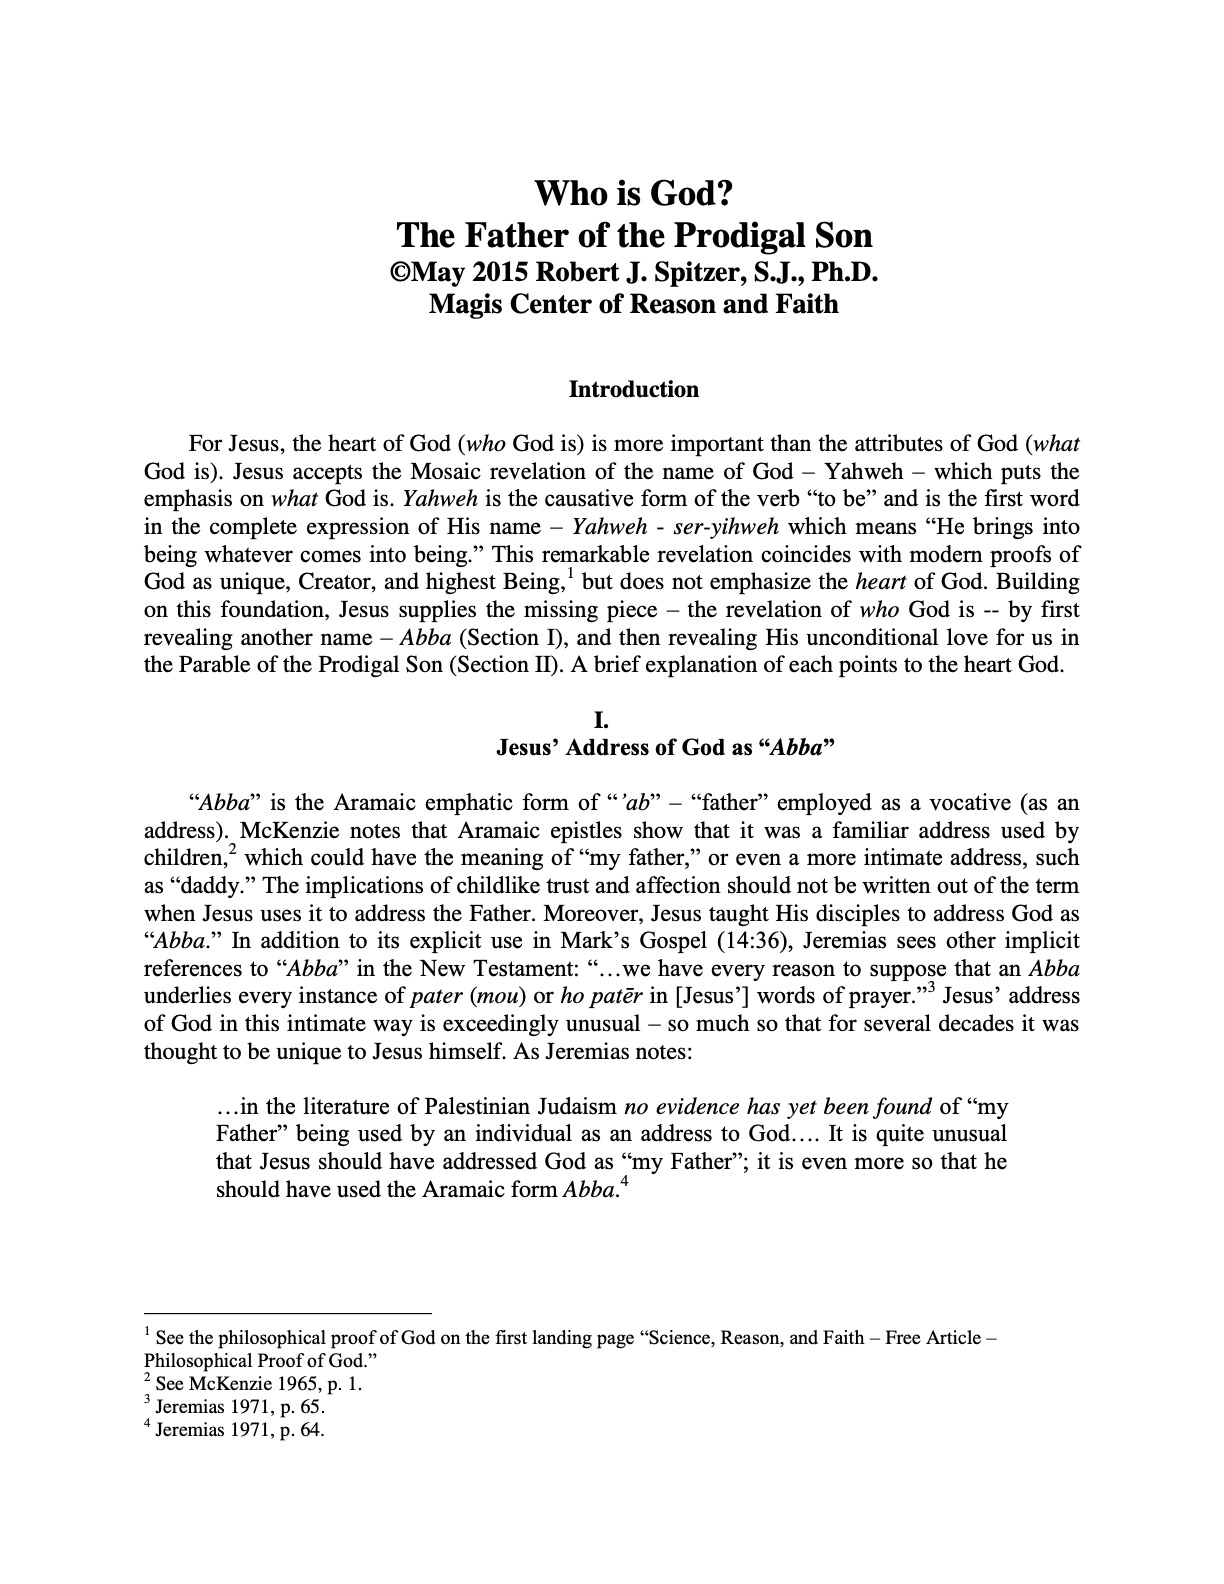 Who_is_God_first_page